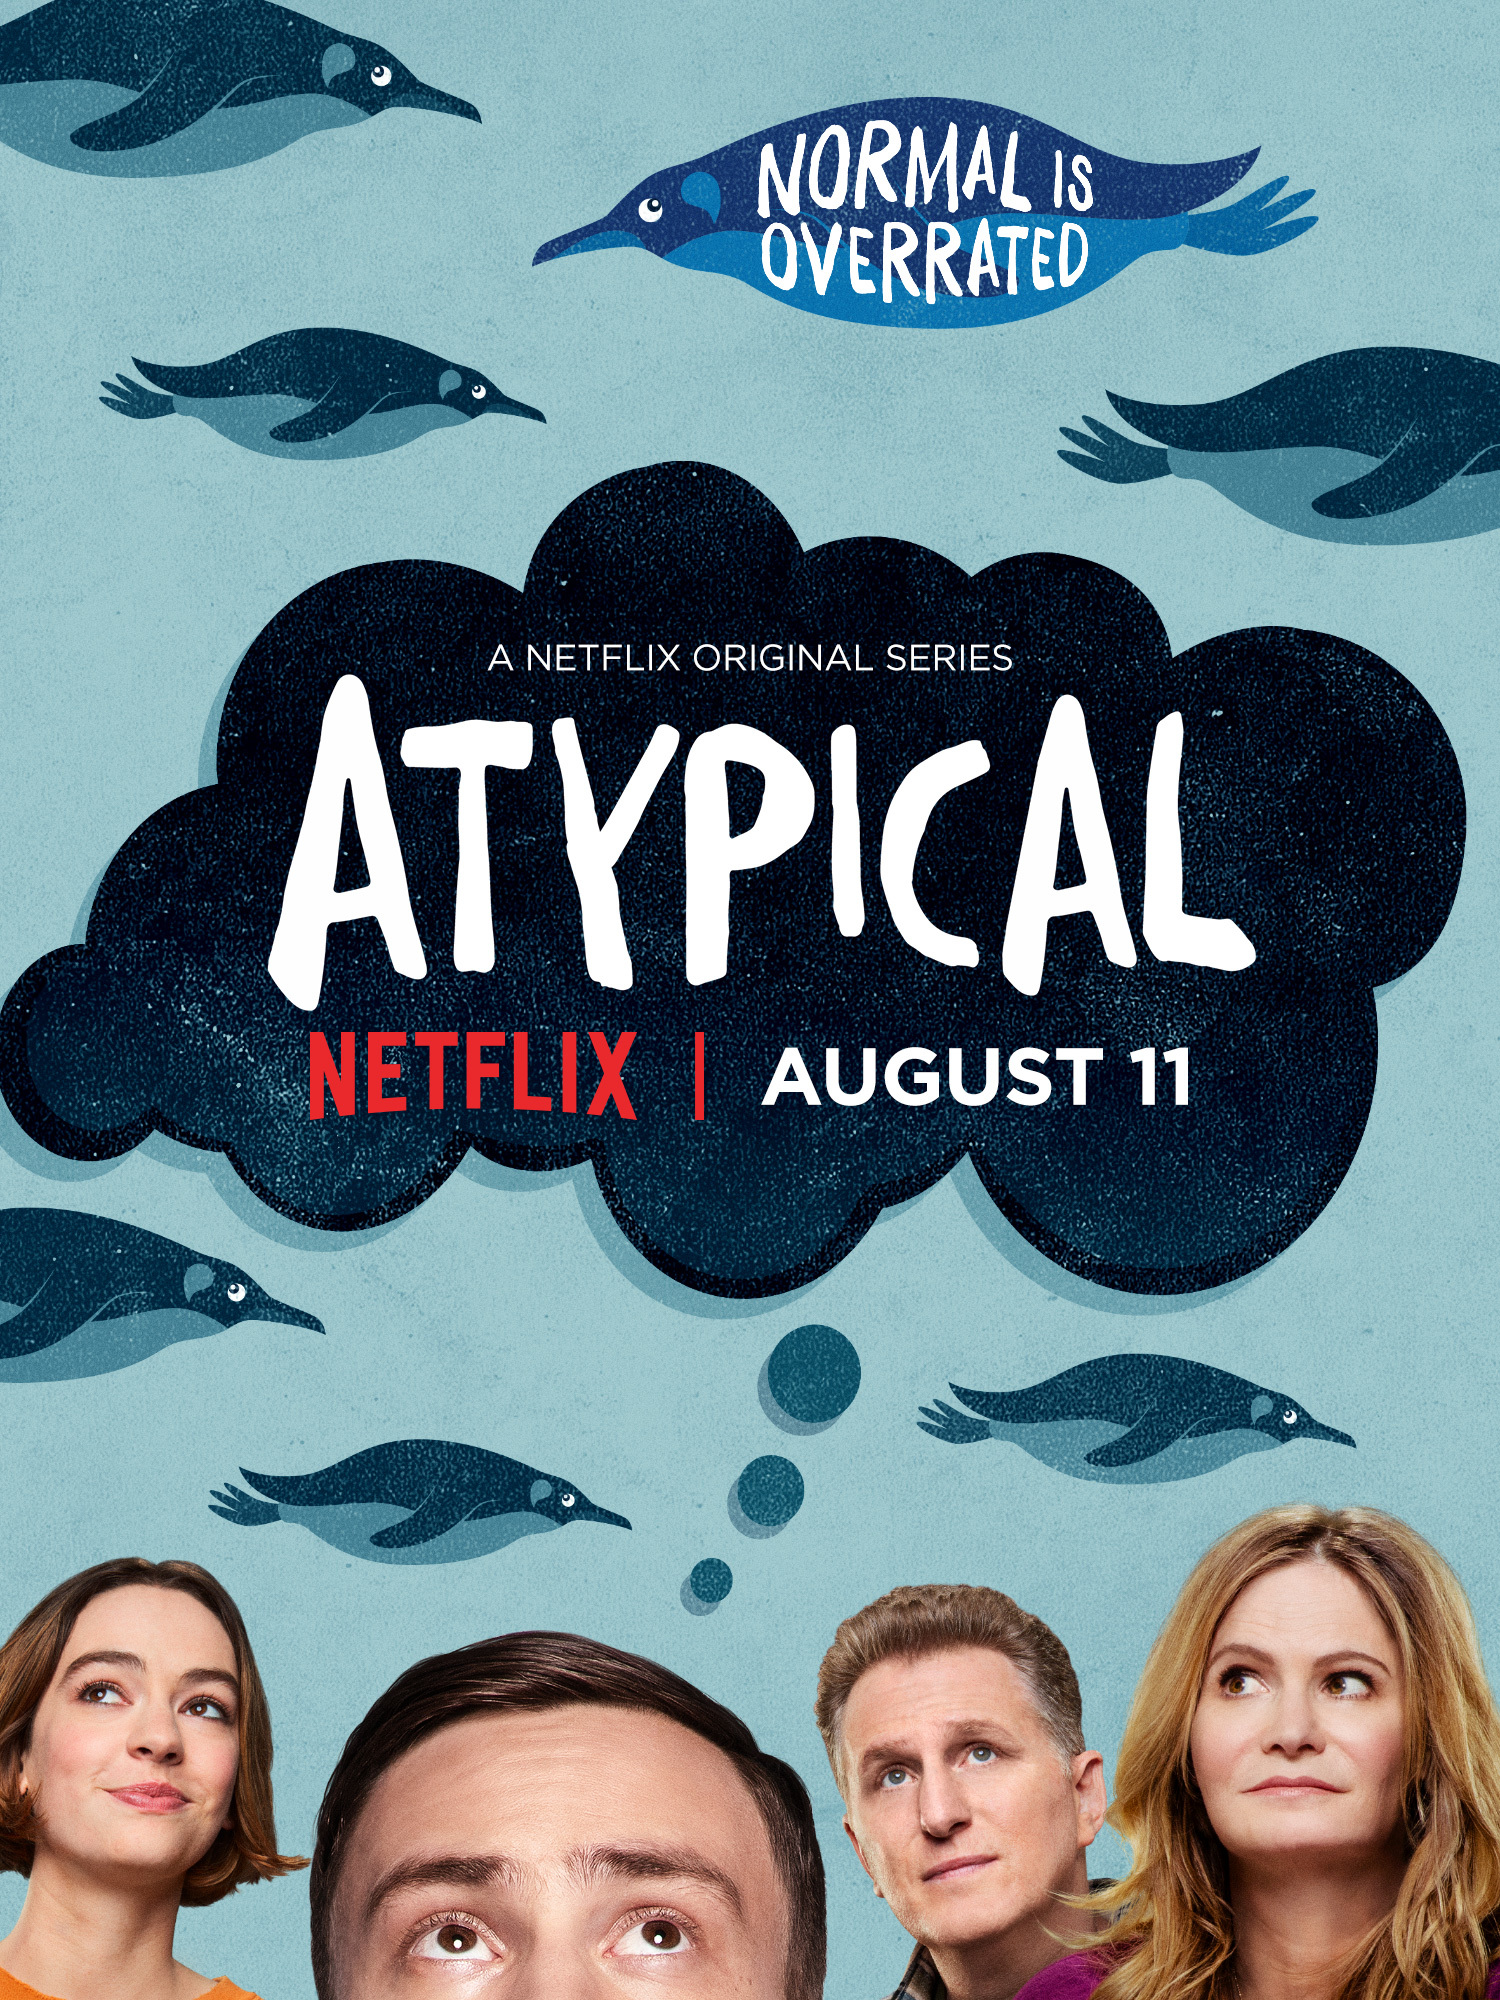 Jennifer Jason Leigh, Michael Rapaport, Keir Gilchrist, and Brigette Lundy-Paine in Atypical (2017)